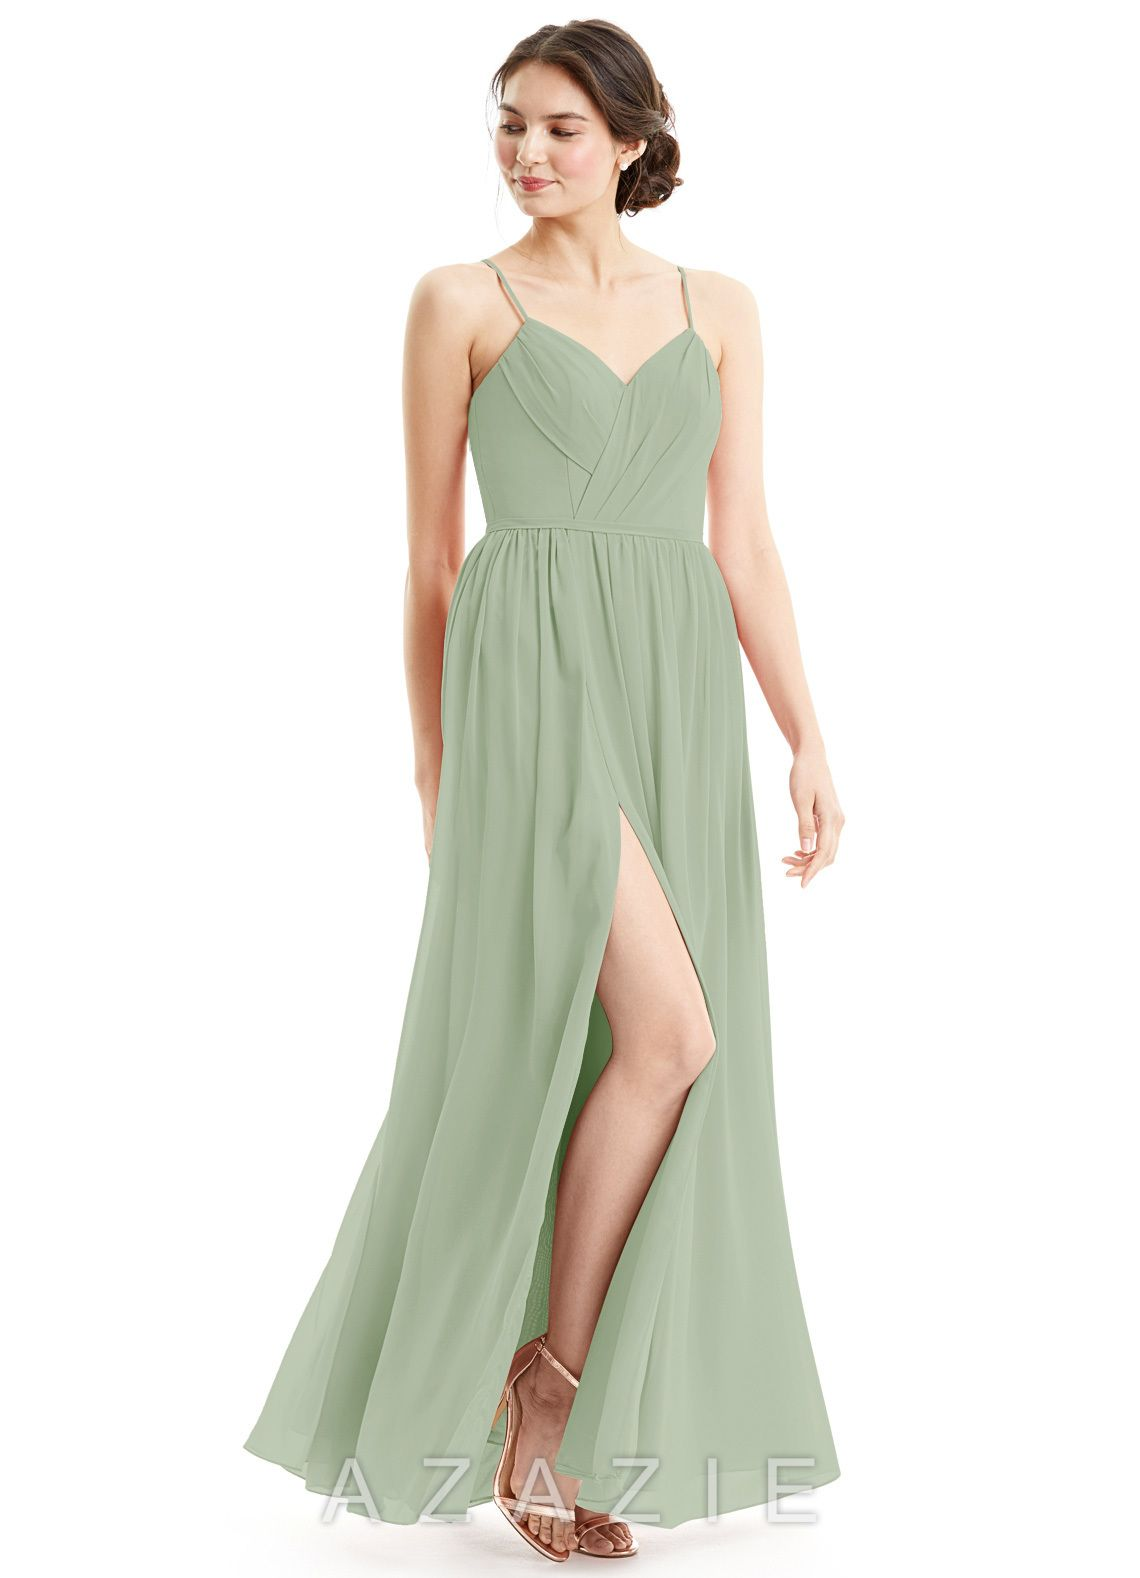 c15cd78e9fe Azazie Cora Bridesmaid Dress - Flamingo